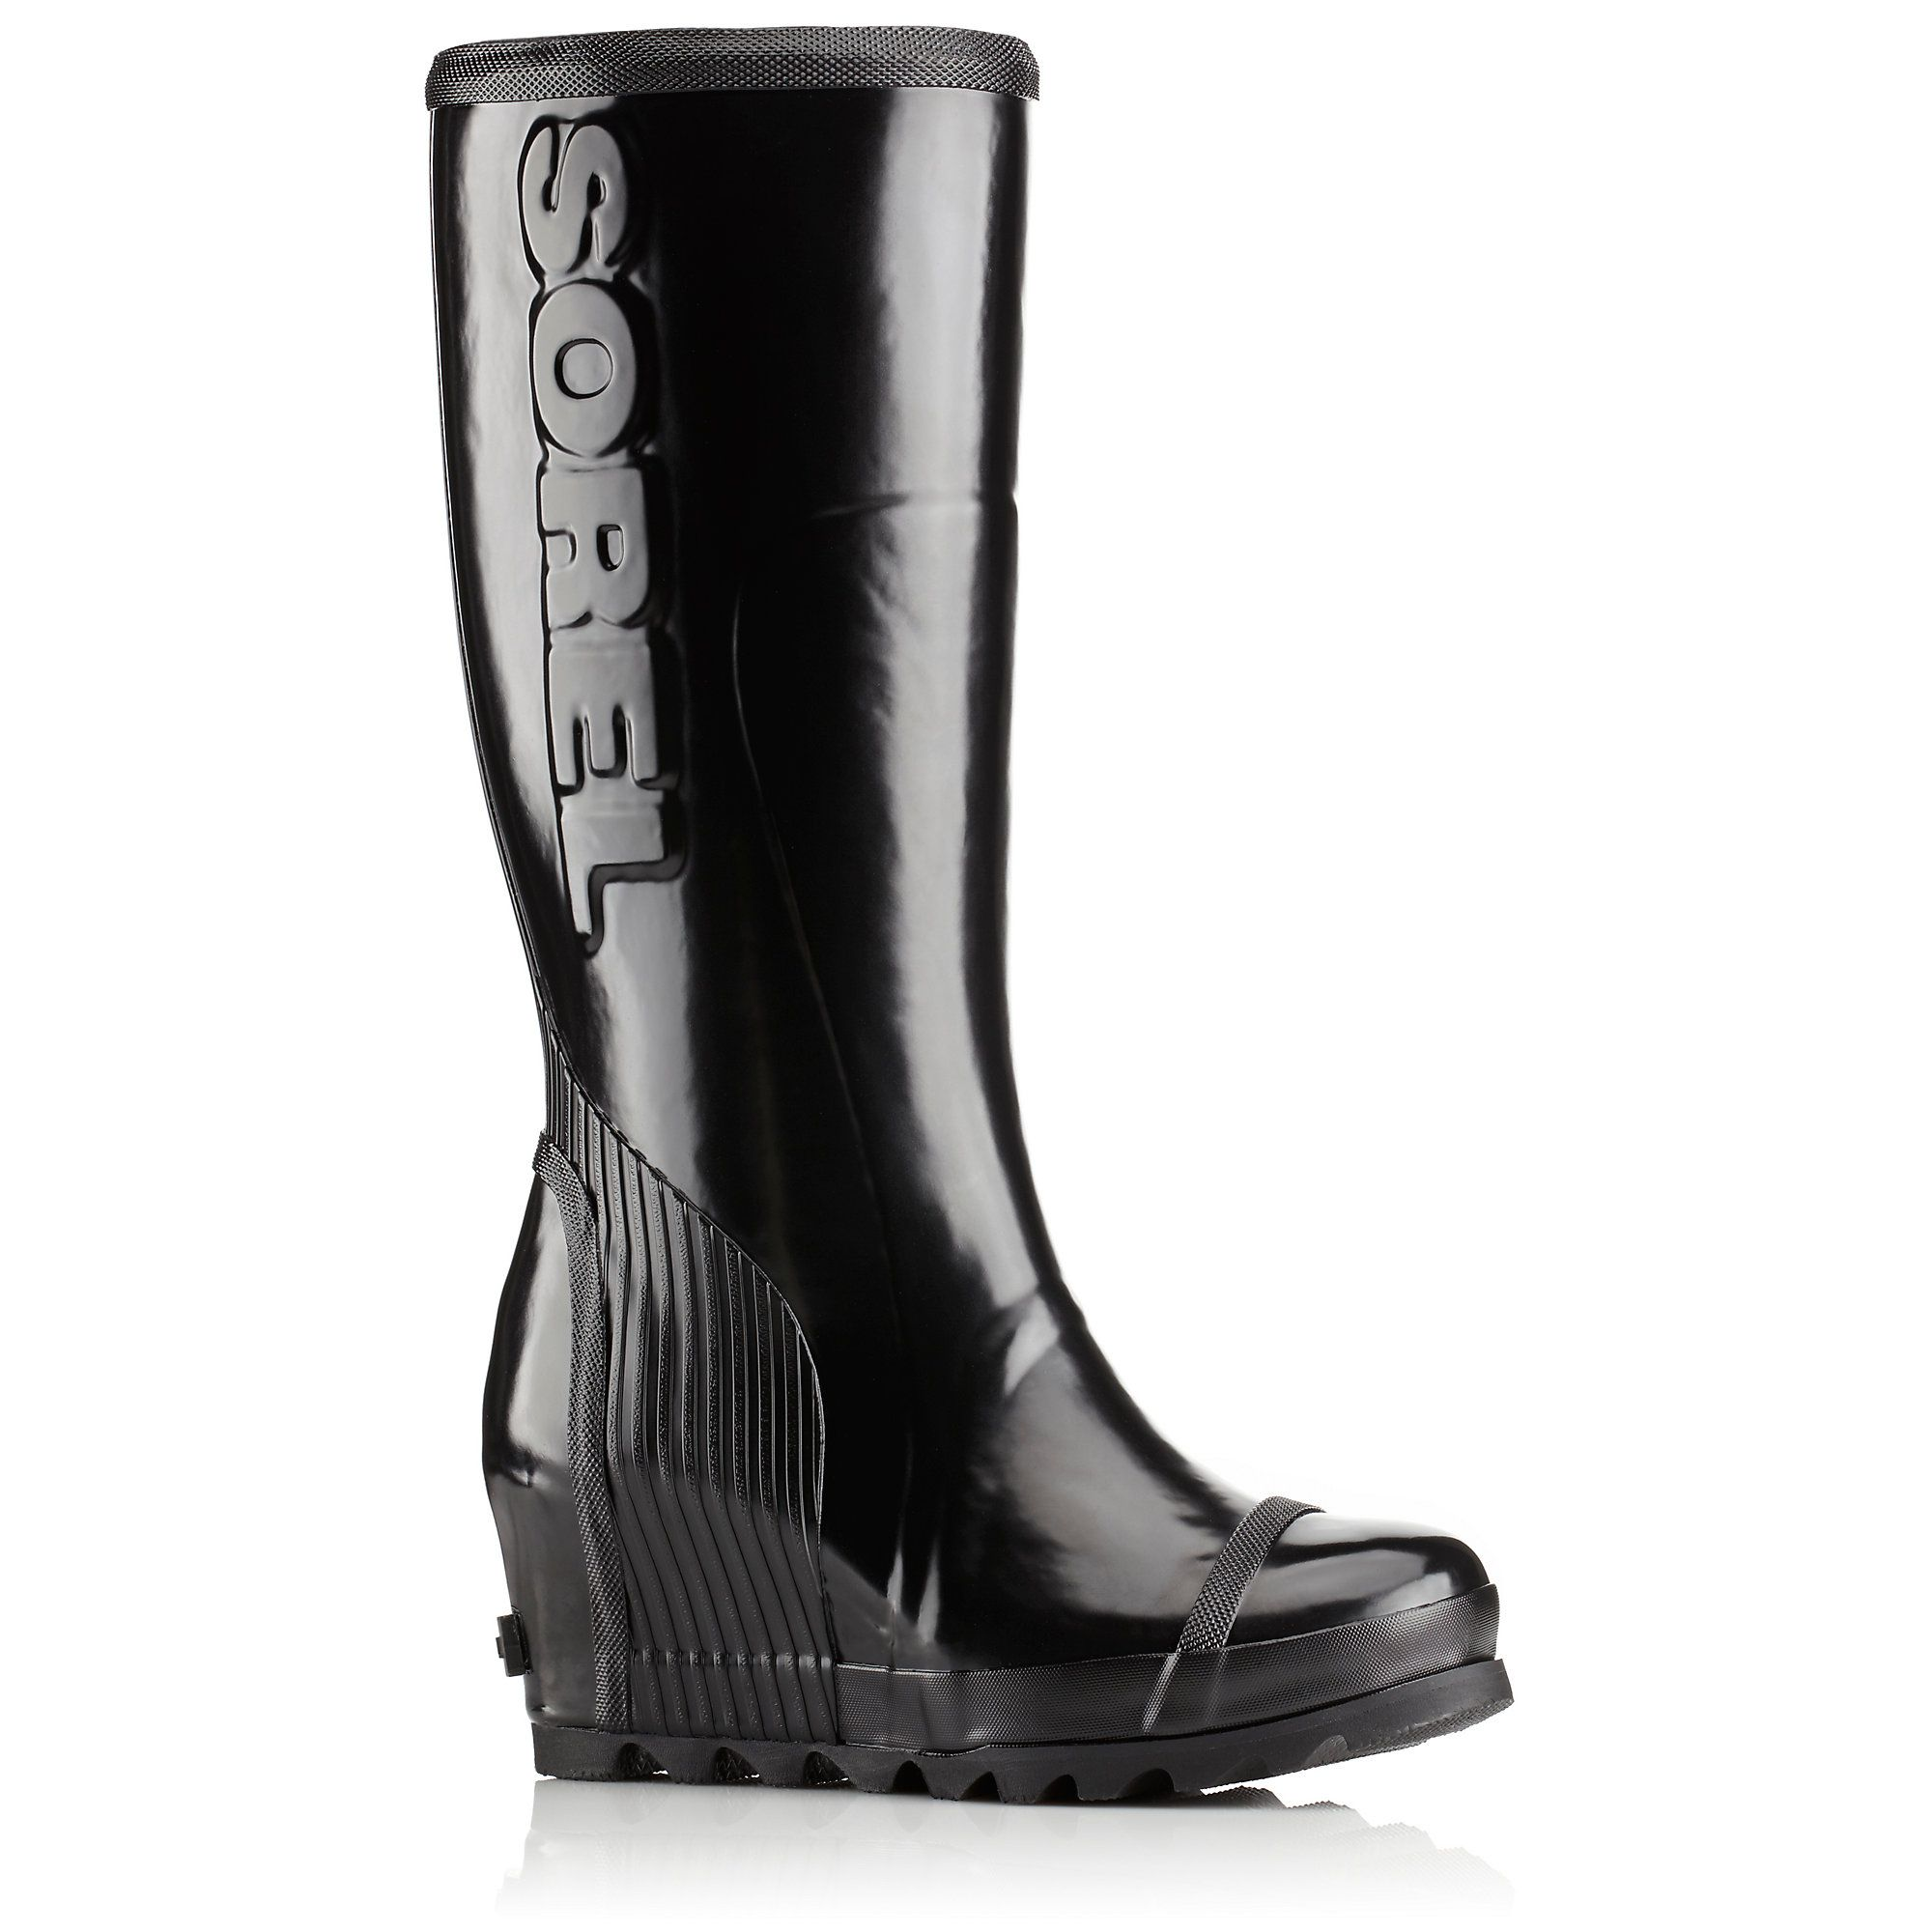 SOREL Womens Joan Rain Tall Gloss Boot SOREL Women/'s Joan Rain Tall Gloss Boot